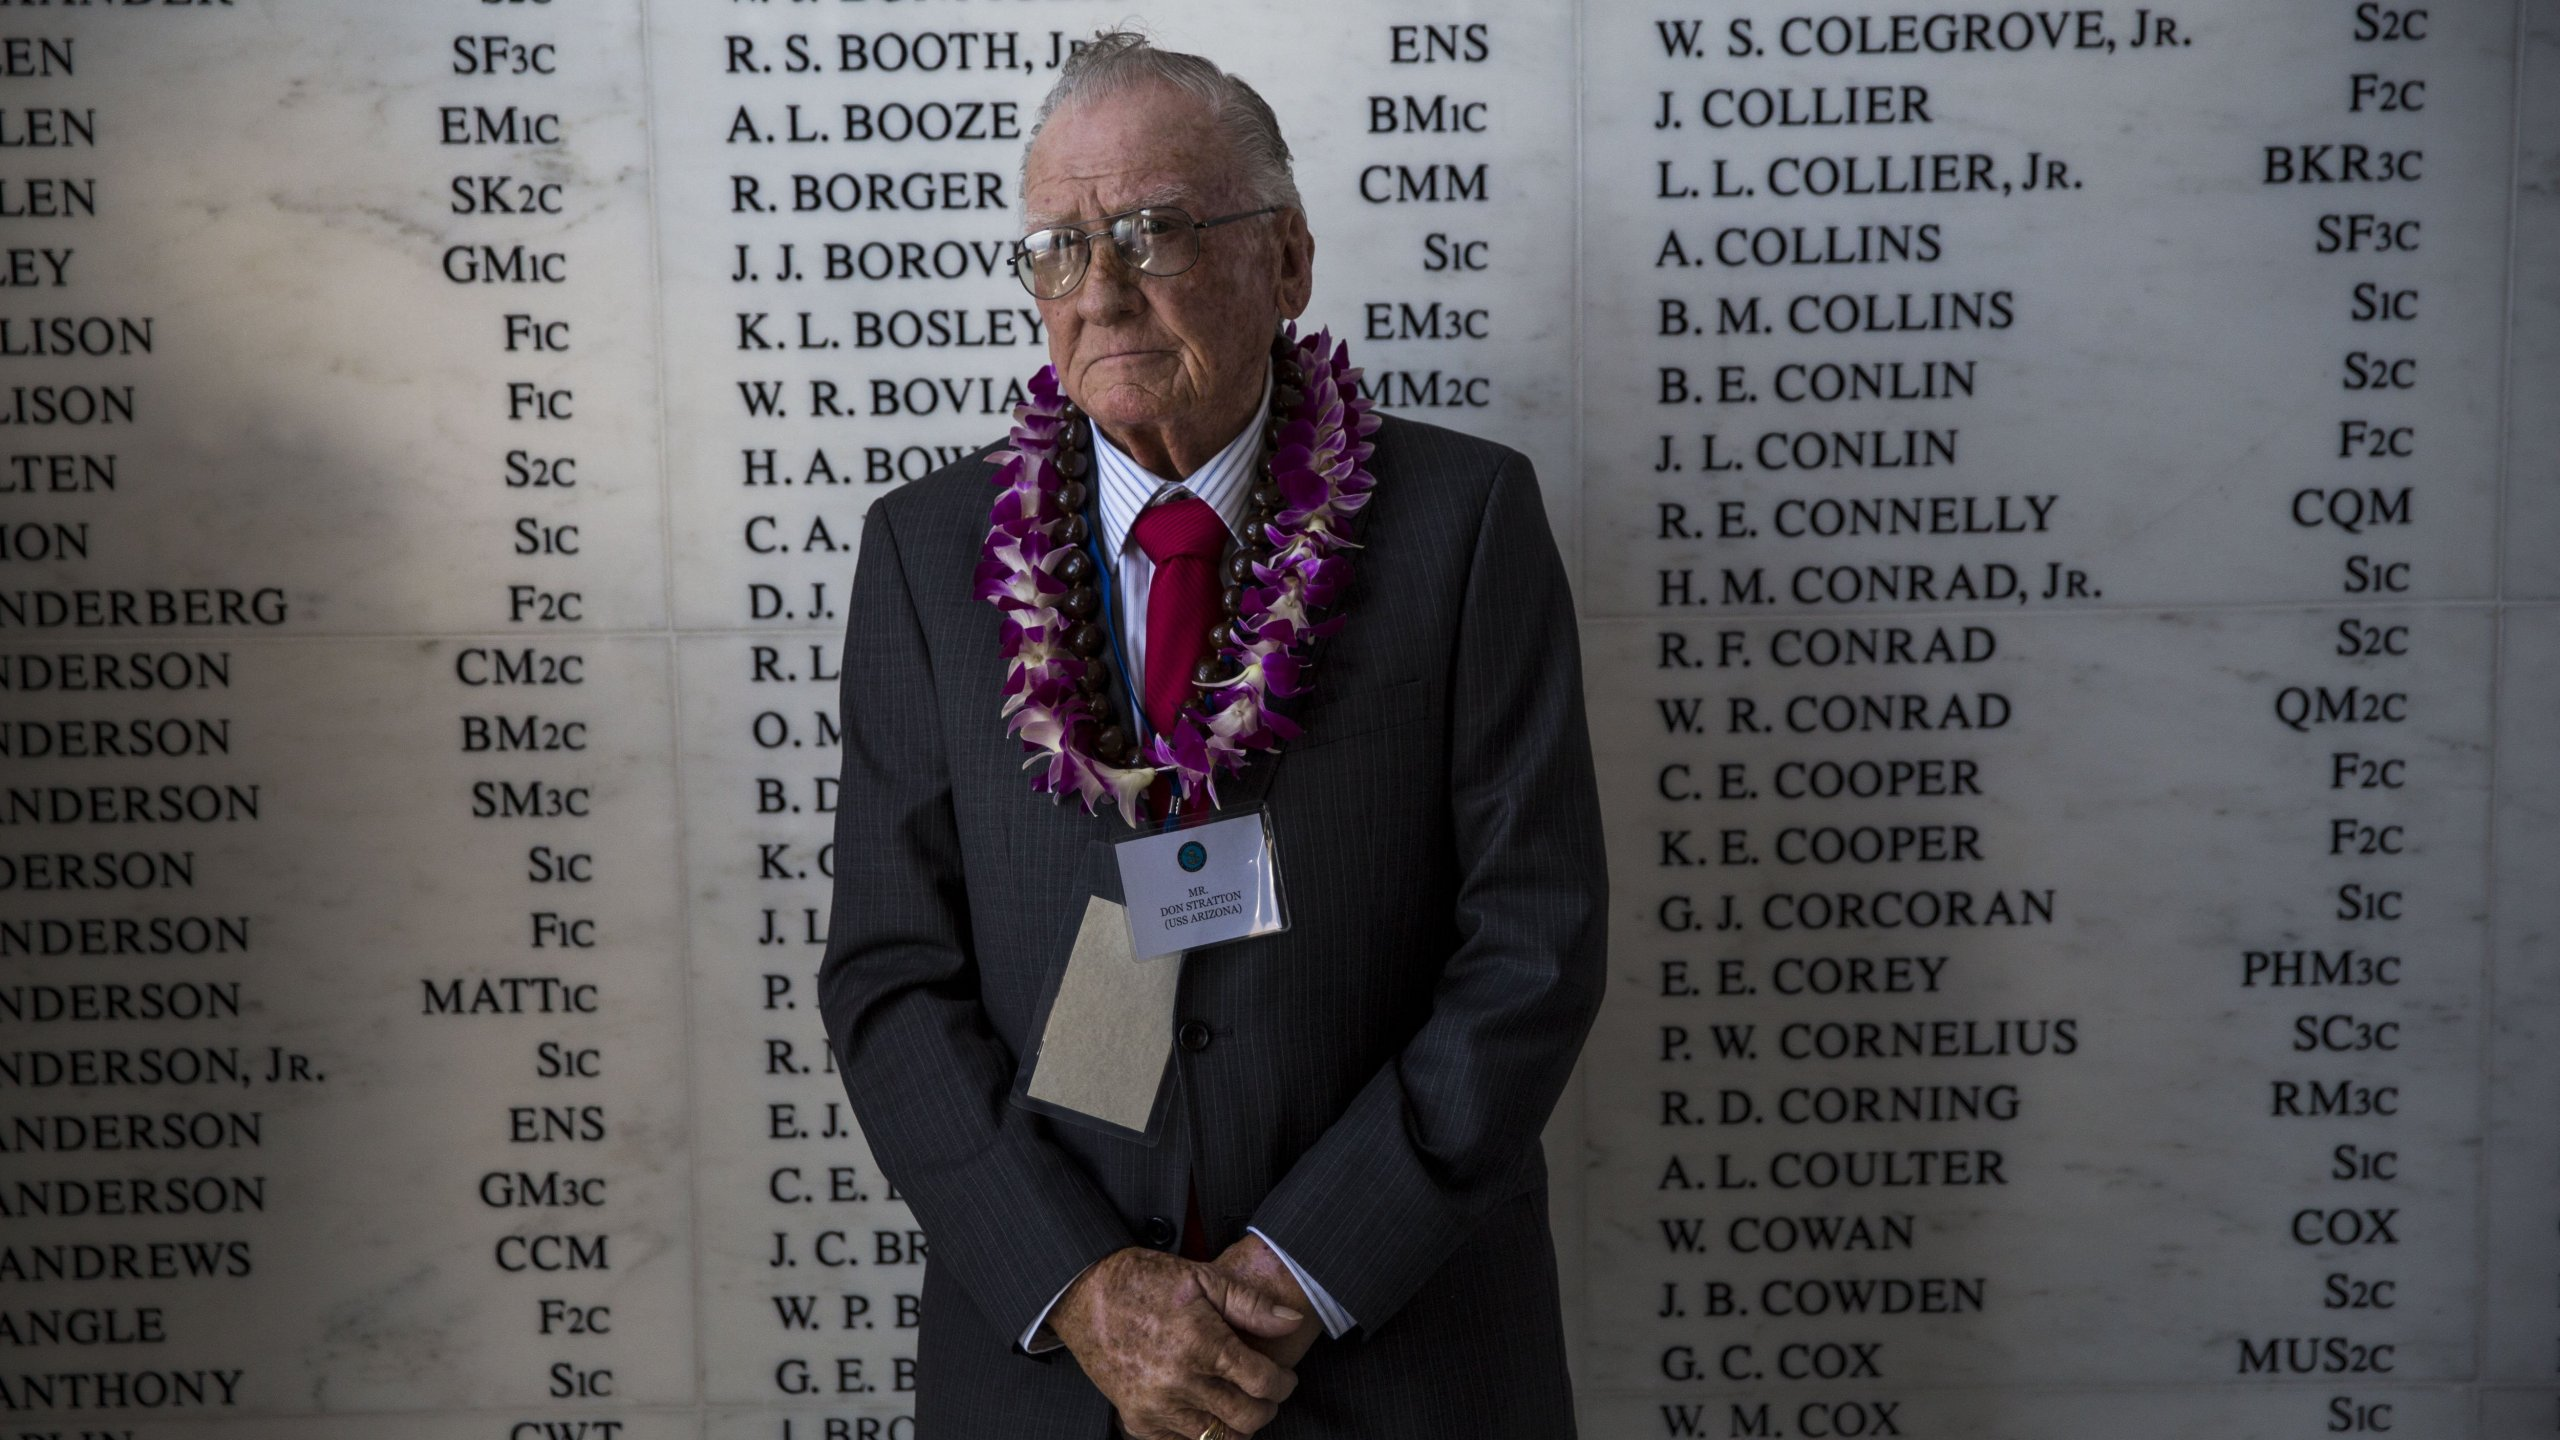 U.S.S. Arizona survivor Donald Stratton stands in front of the remembrance wall in the shrine room the U.S.S. Arizona Memorial during a memorial service for the 73rd anniversary of the attack on the U.S. naval base at Pearl harbor on the island of Oahu at the Pacific National Monument on December 07, 2014 in Pearl Harbor, Hawaii. (Credit: Kent Nishimura/Getty Images)